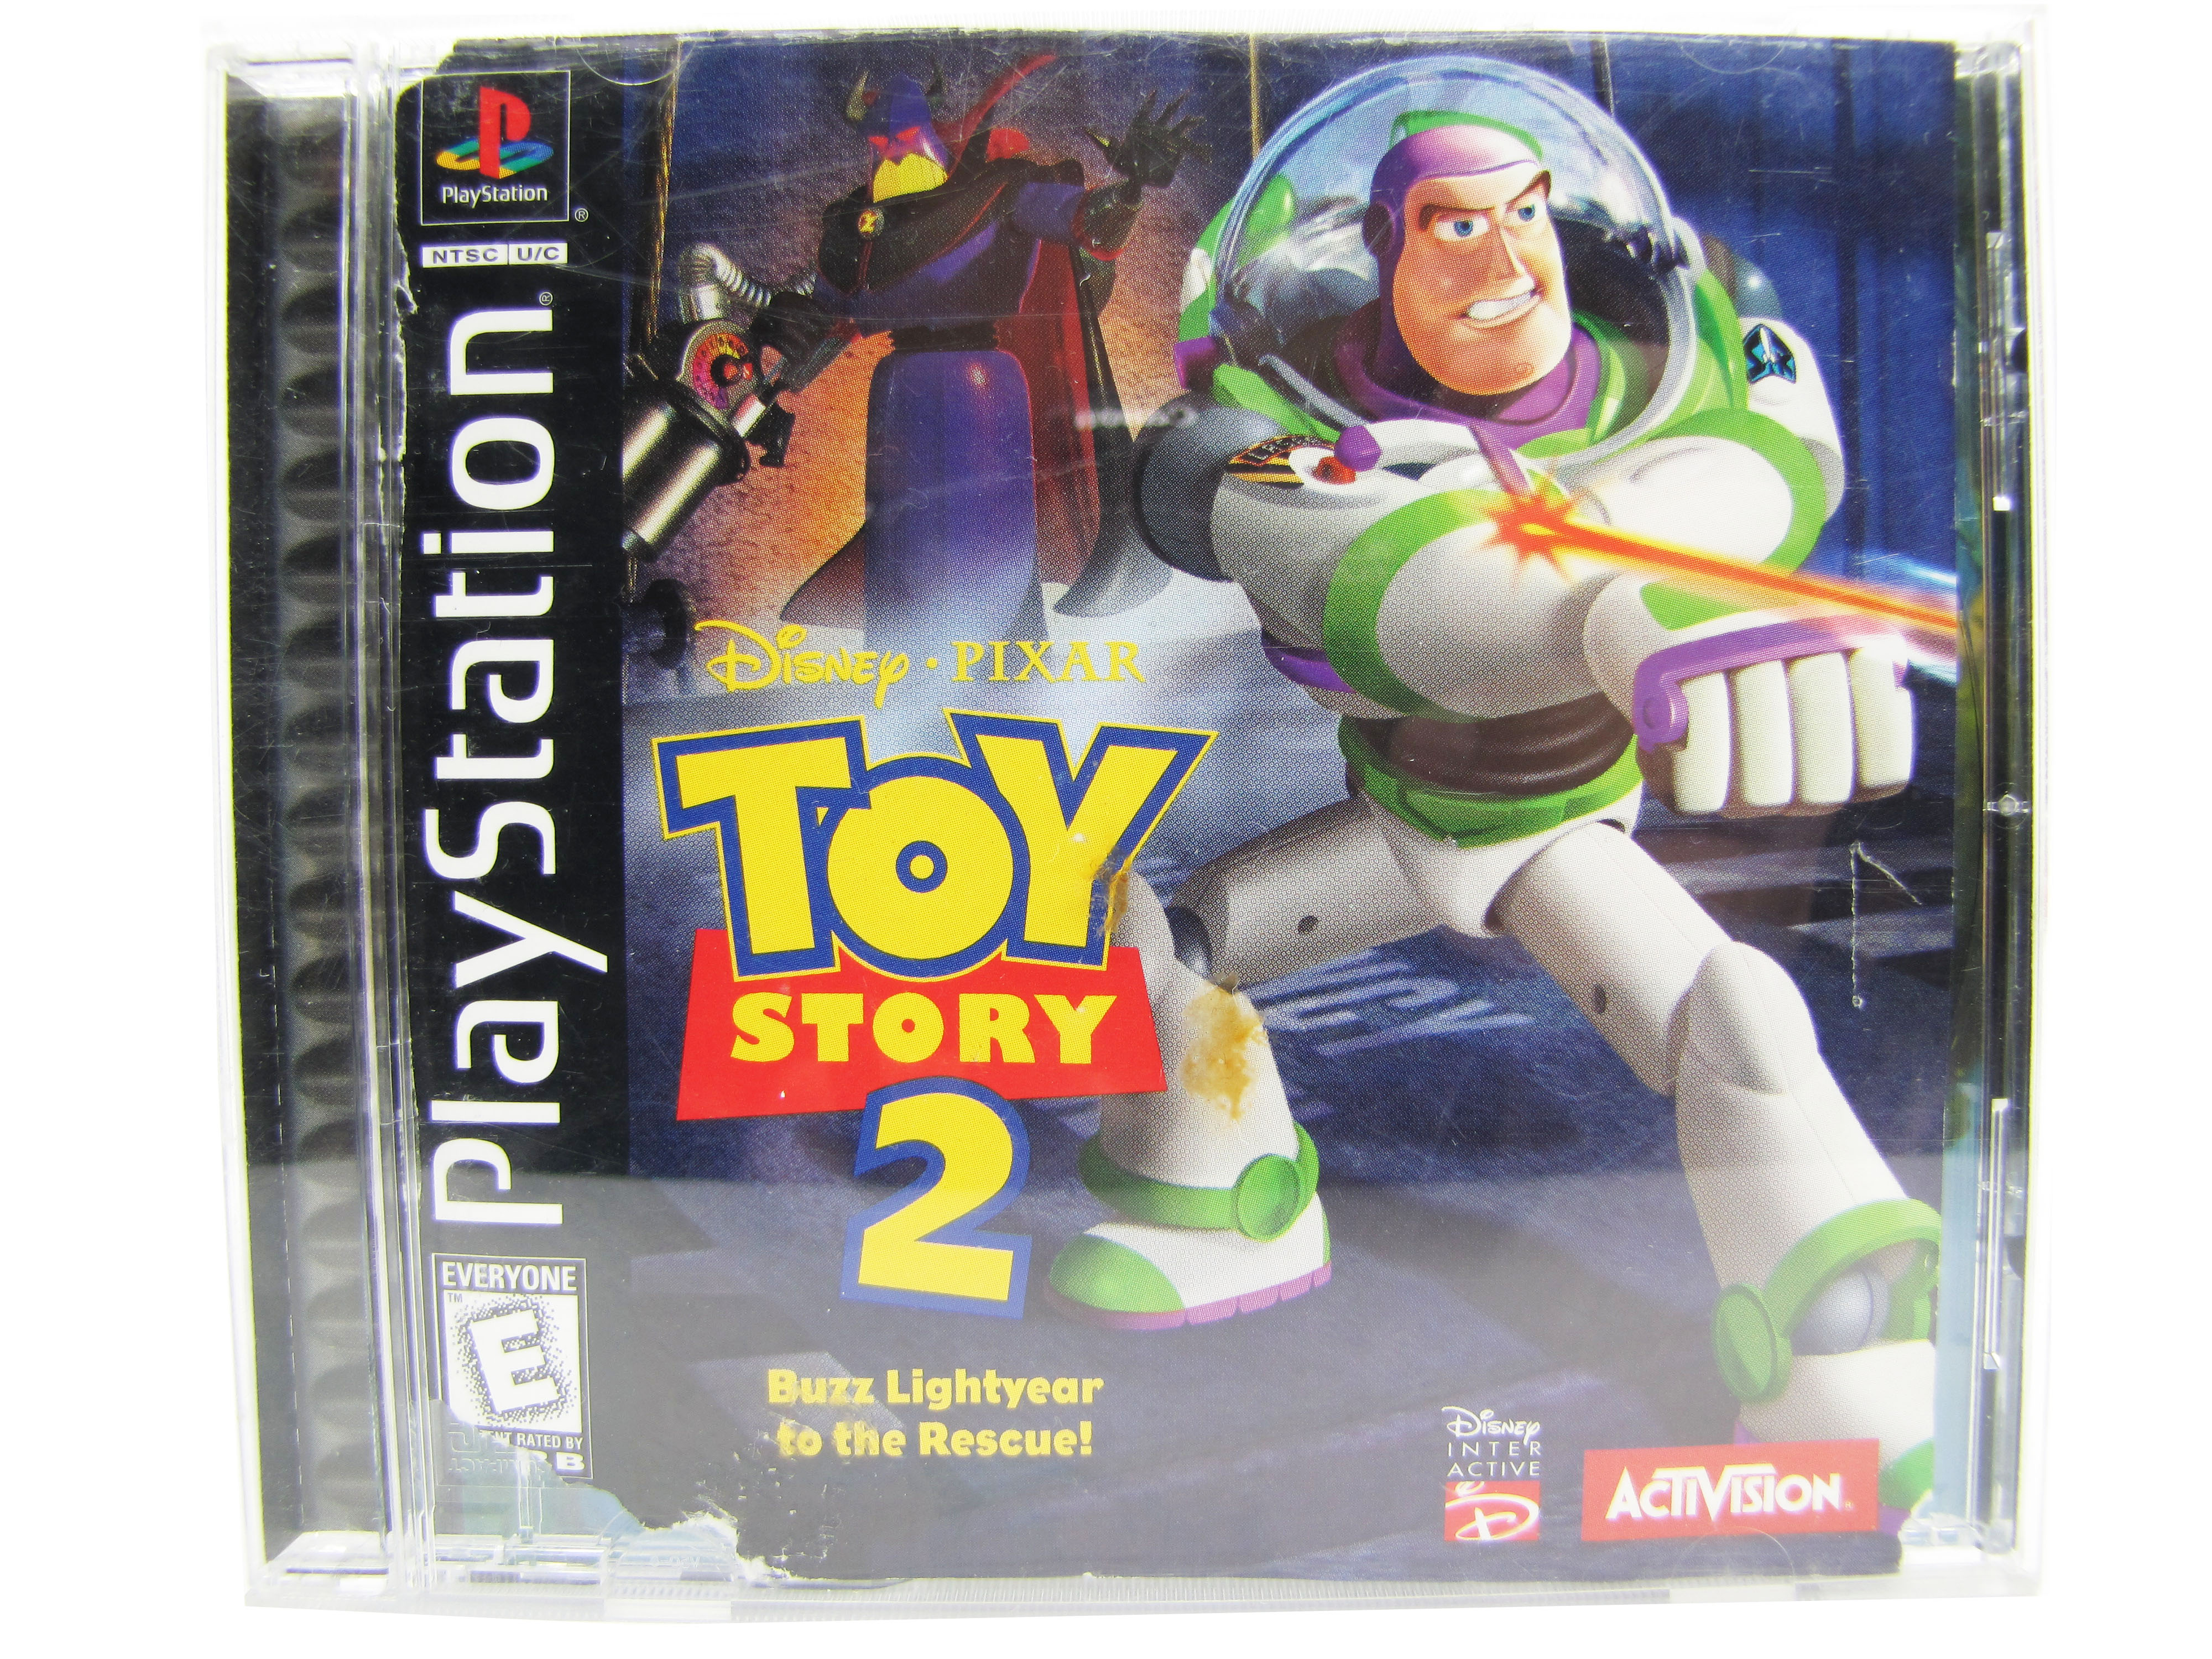 PS1 Toy Story 2: Buzz Lightyear to the Rescue! Complete - 1999